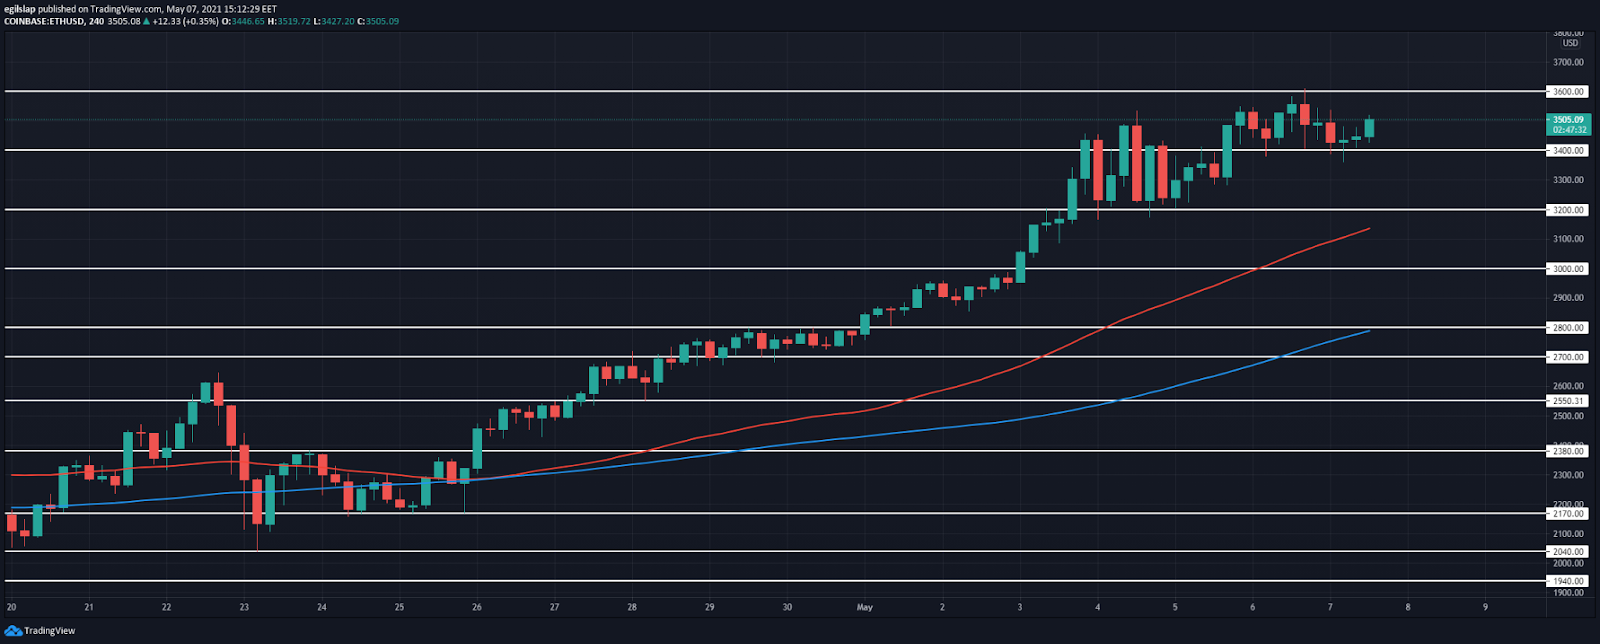 Ethereum price prediction: Ethereum reached $3,600, retests $3,400 as it prepares to move higher